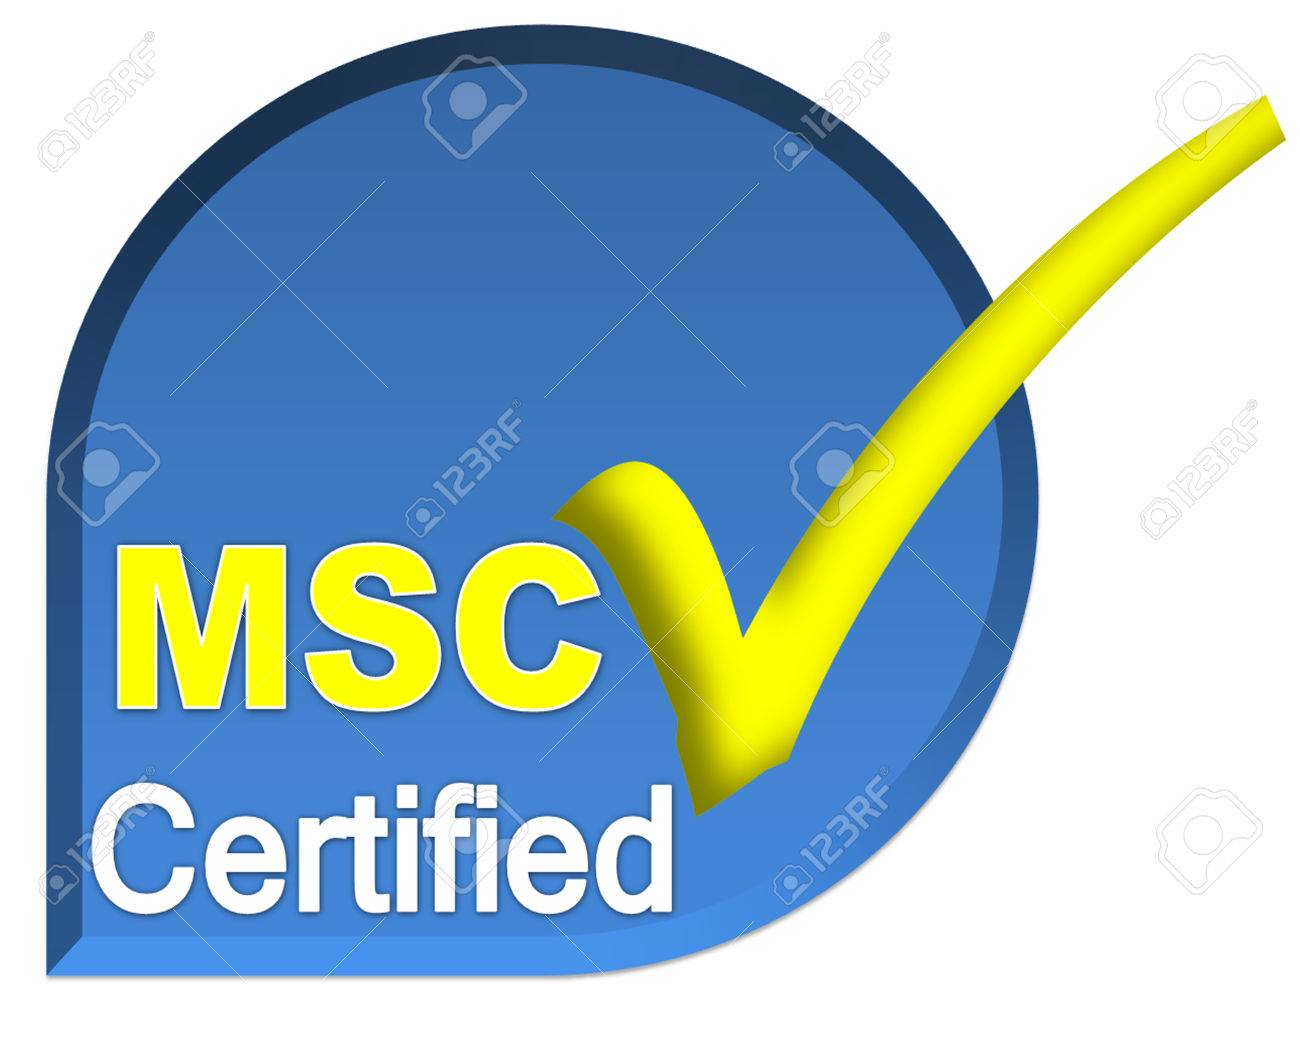 Certificate Logo Or Symbol Of MSC System On Blue Color Stock Photo ...